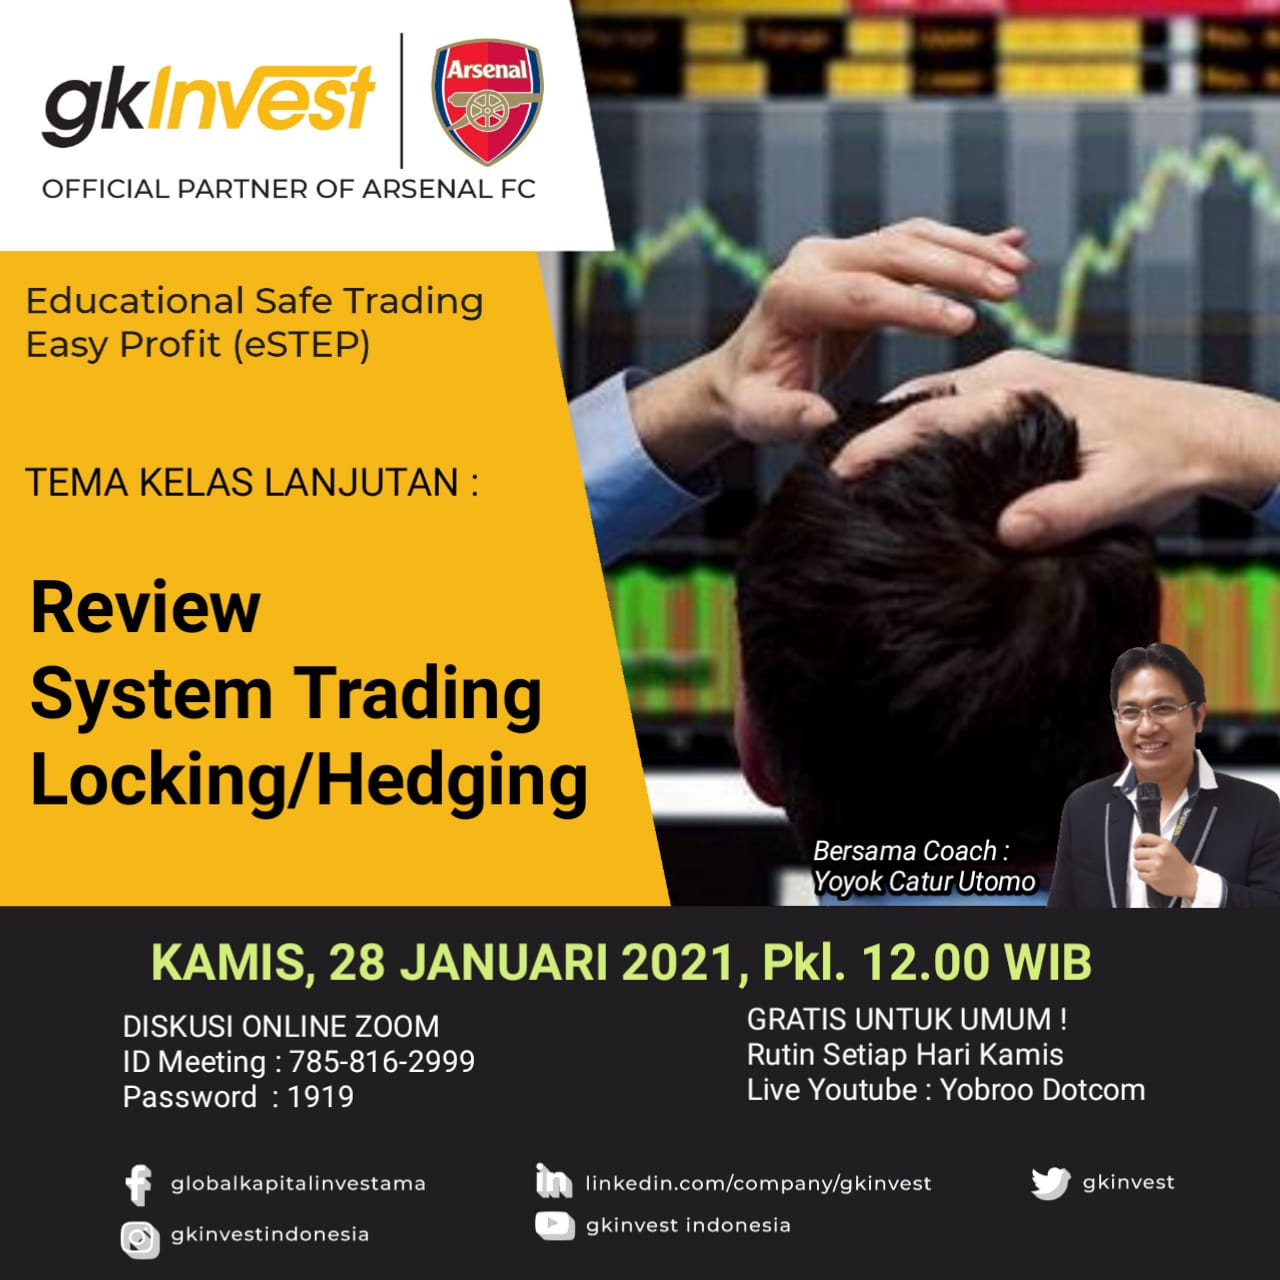 REVIEW SYSTEM TRADING LOCKING/HEDGING